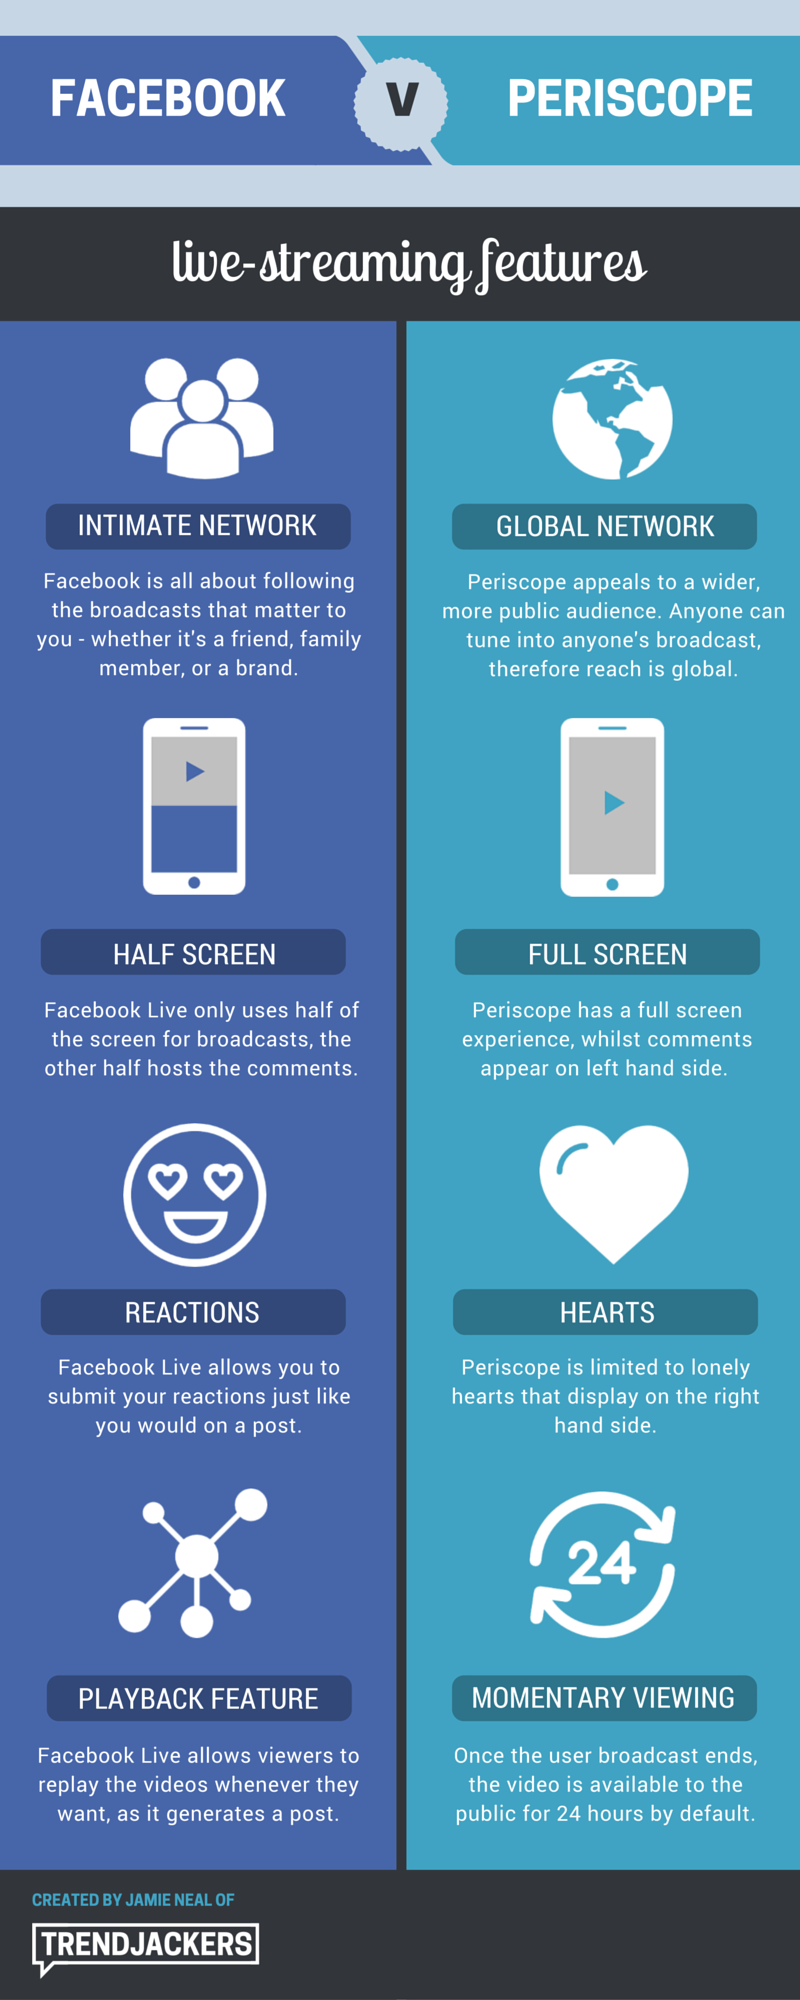 Periscope V Facebook Live Infographic